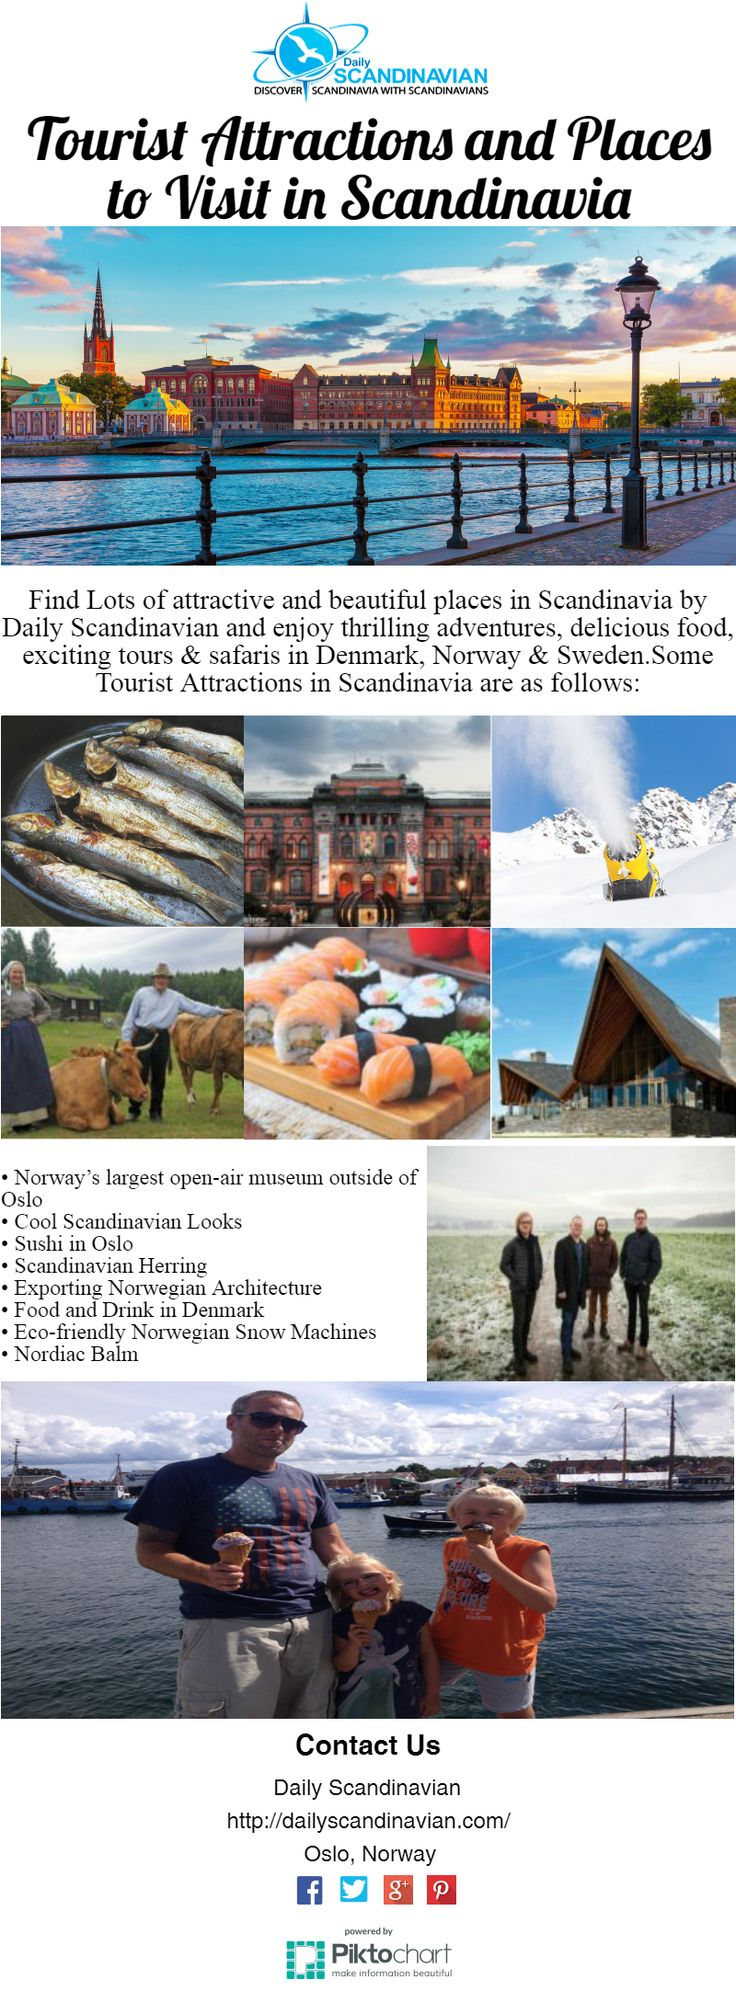 Tourist Attractions and Places to Visit in Scandinavia  Find Lots of attractive and beautiful places in Scandinavia by Daily Scandinavian and enjoy thrilling adventures, delicious food in Denmark, Norway & Sweden.See @ https://magic.piktochart.com/output/21304804-tourist-attractions-and-places-to-visit-in-scandinavia